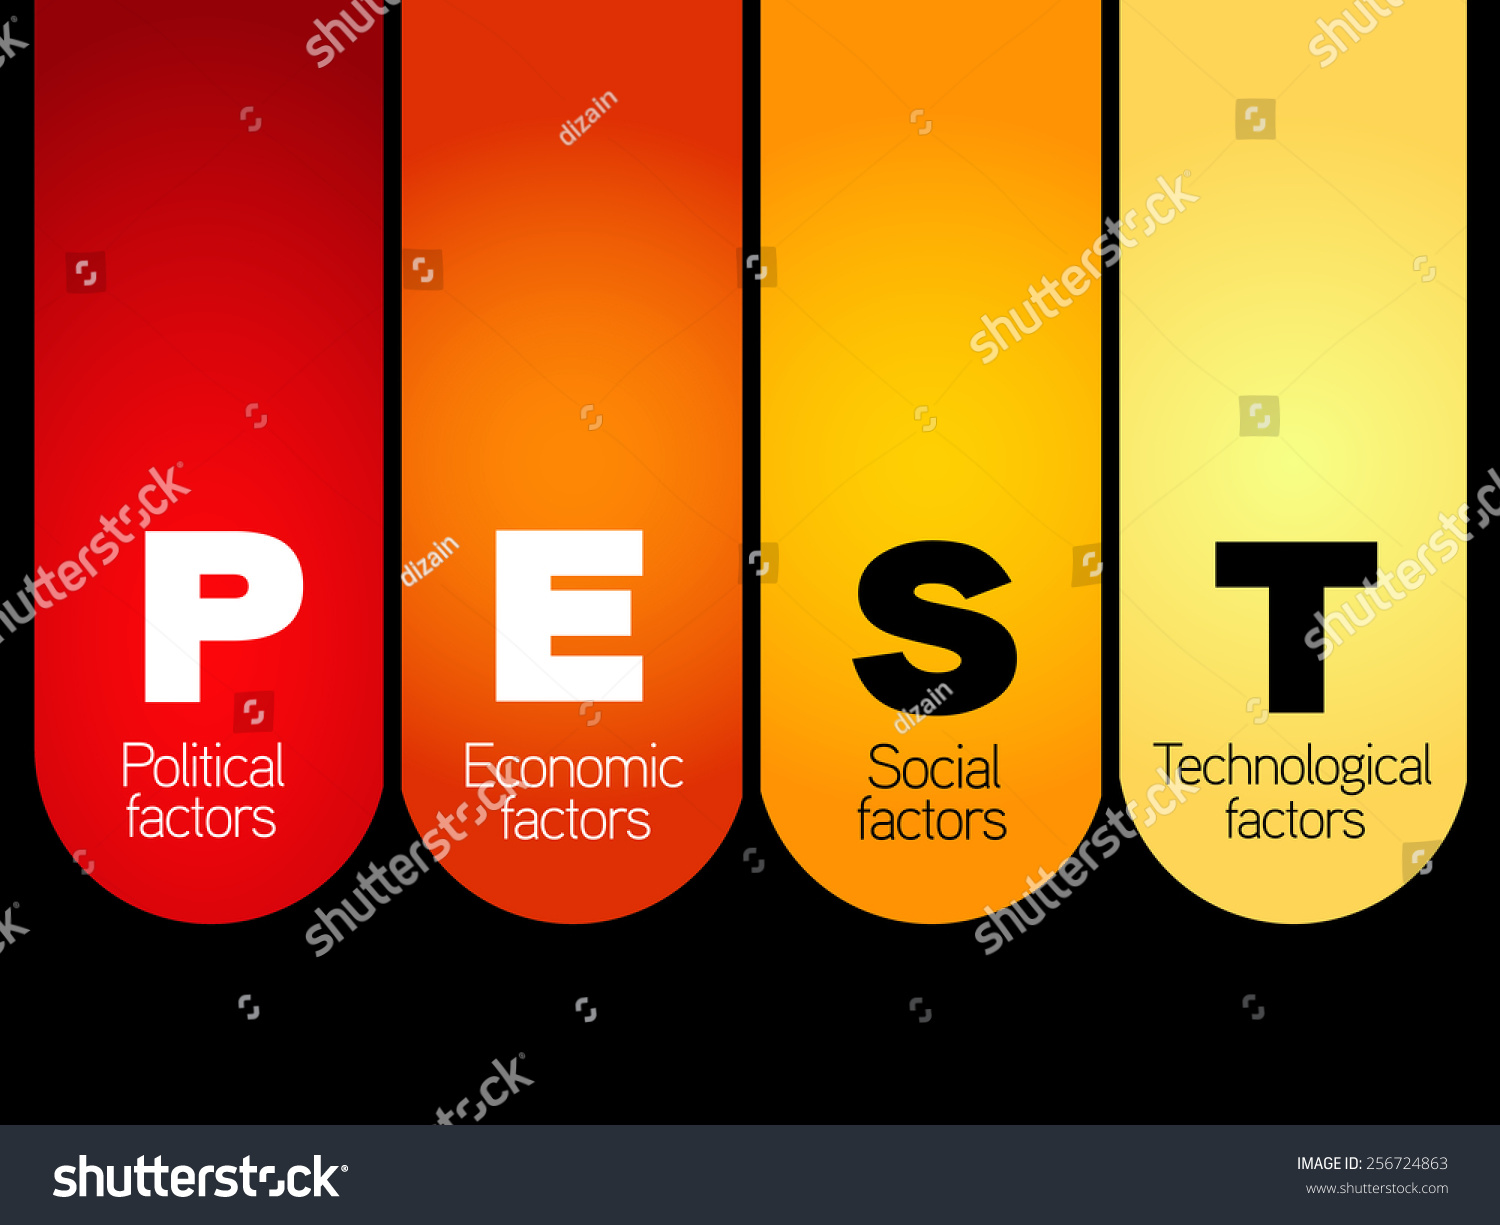 wilkinson s pest analysis Threats can include deregulation that exposes you to intensified competition a shrinking market or increases to interest rates, which can cause problems if your company is burdened by debt pest analysis is a simple and widely used tool that helps you analyze the political, economic, socio-cultural, and technological.